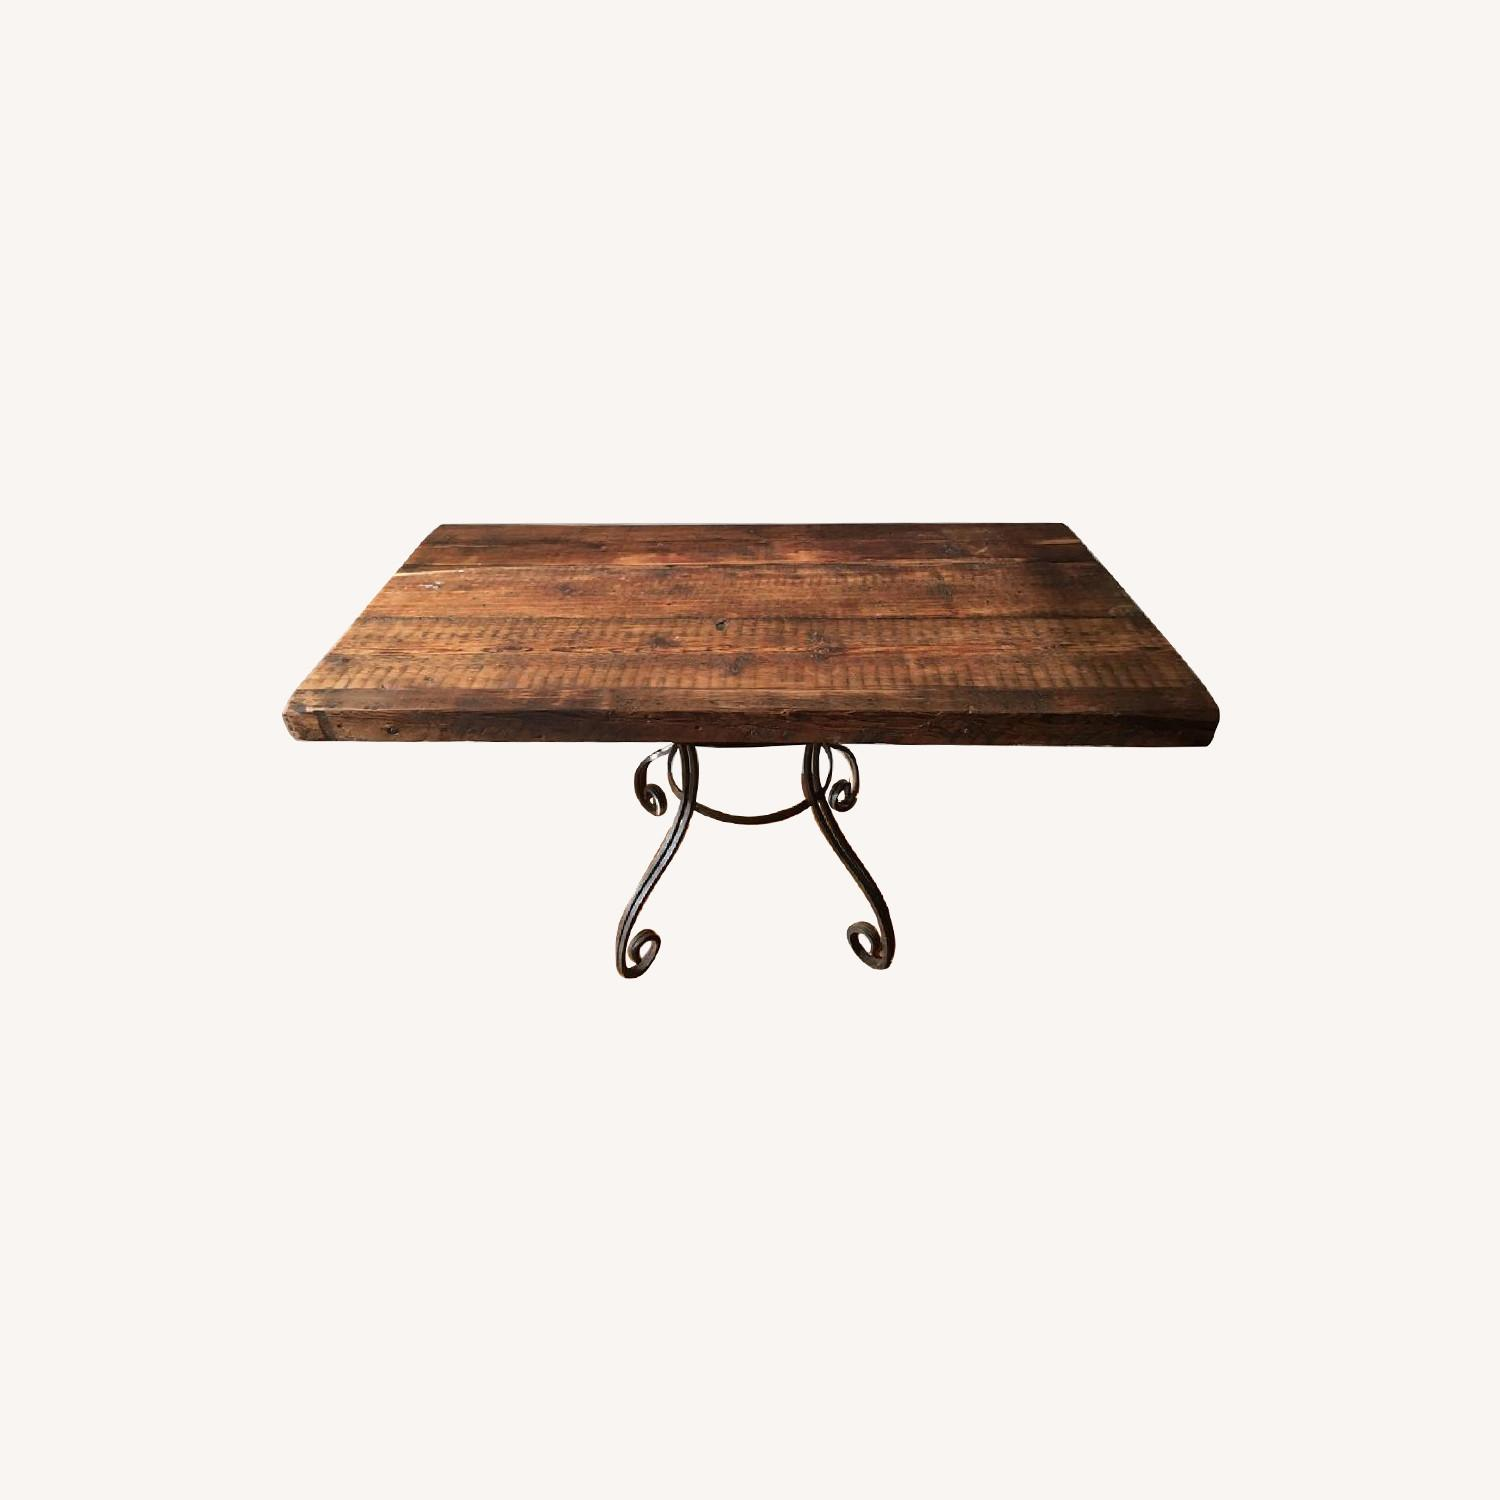 Rustic Dining Table w/ 1 Bench - image-0